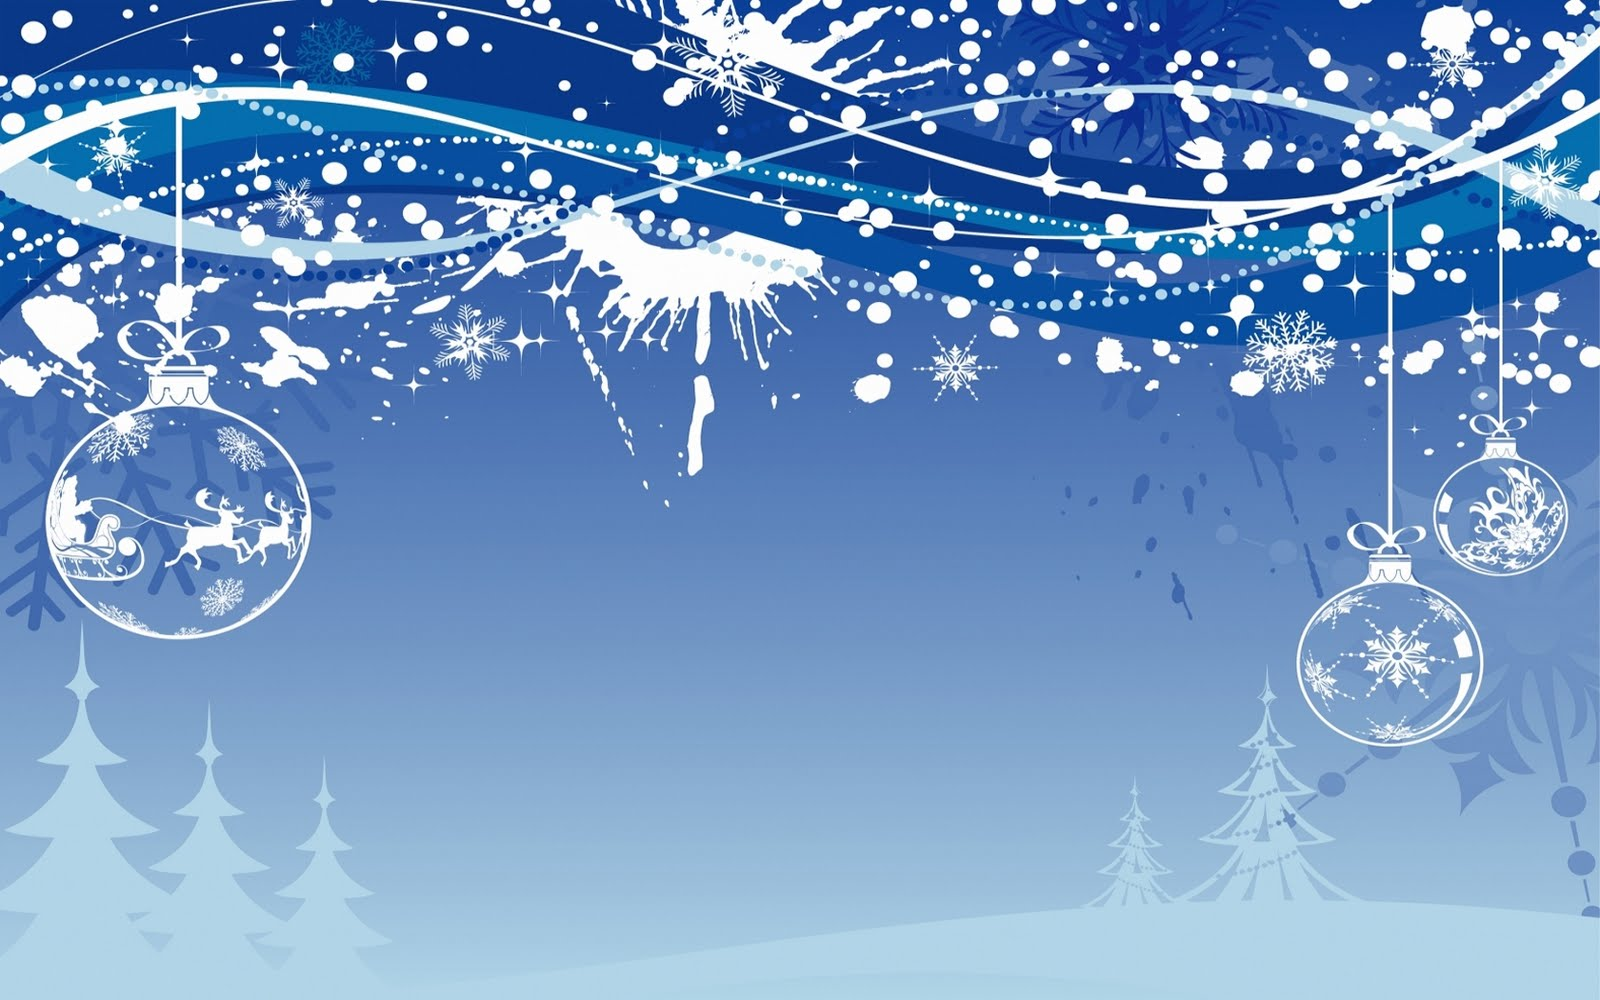 Christmas Winter Desktop Wallpapers 1600x1000